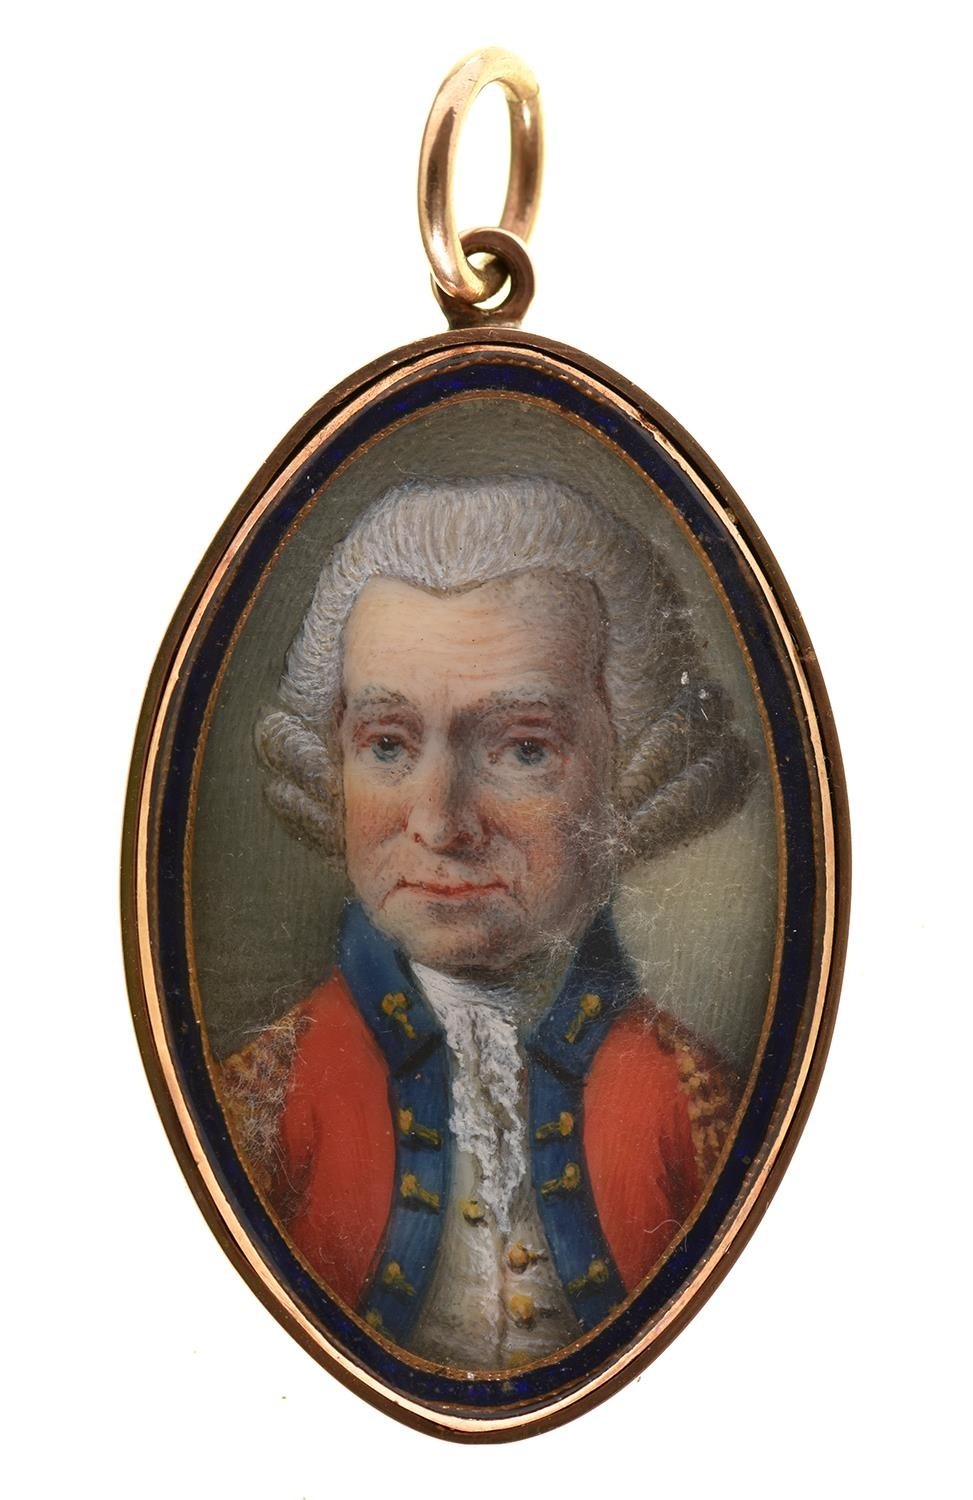 EnglishSchool, 18th c - Portrait Miniature of an Officer, in uniform and powdered wig, navette